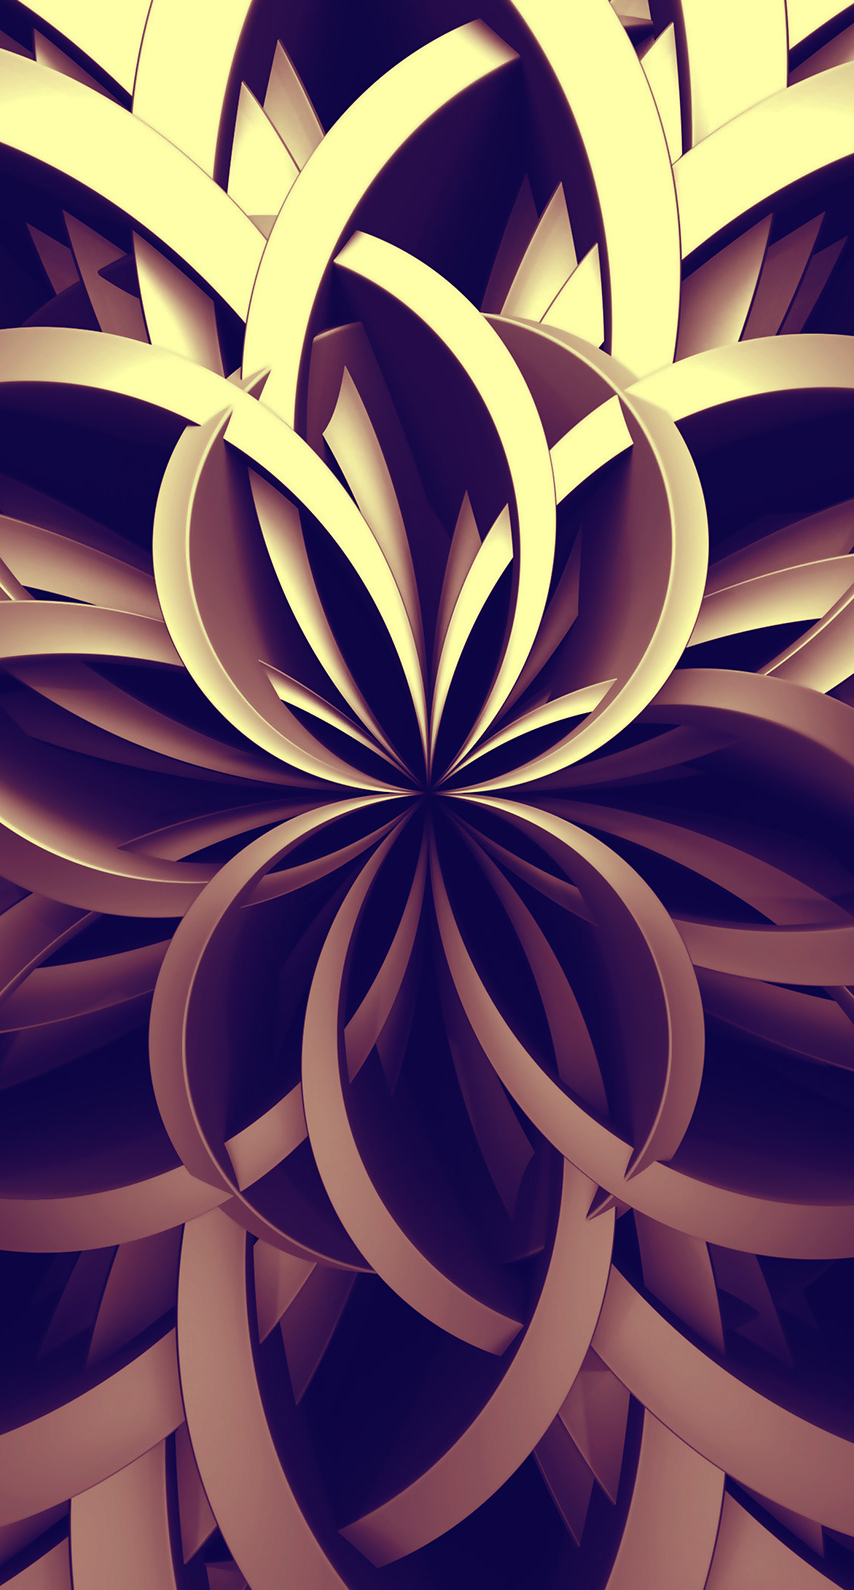 dynamic, geometry, artistic, art, graphic, design, background, wallpaper